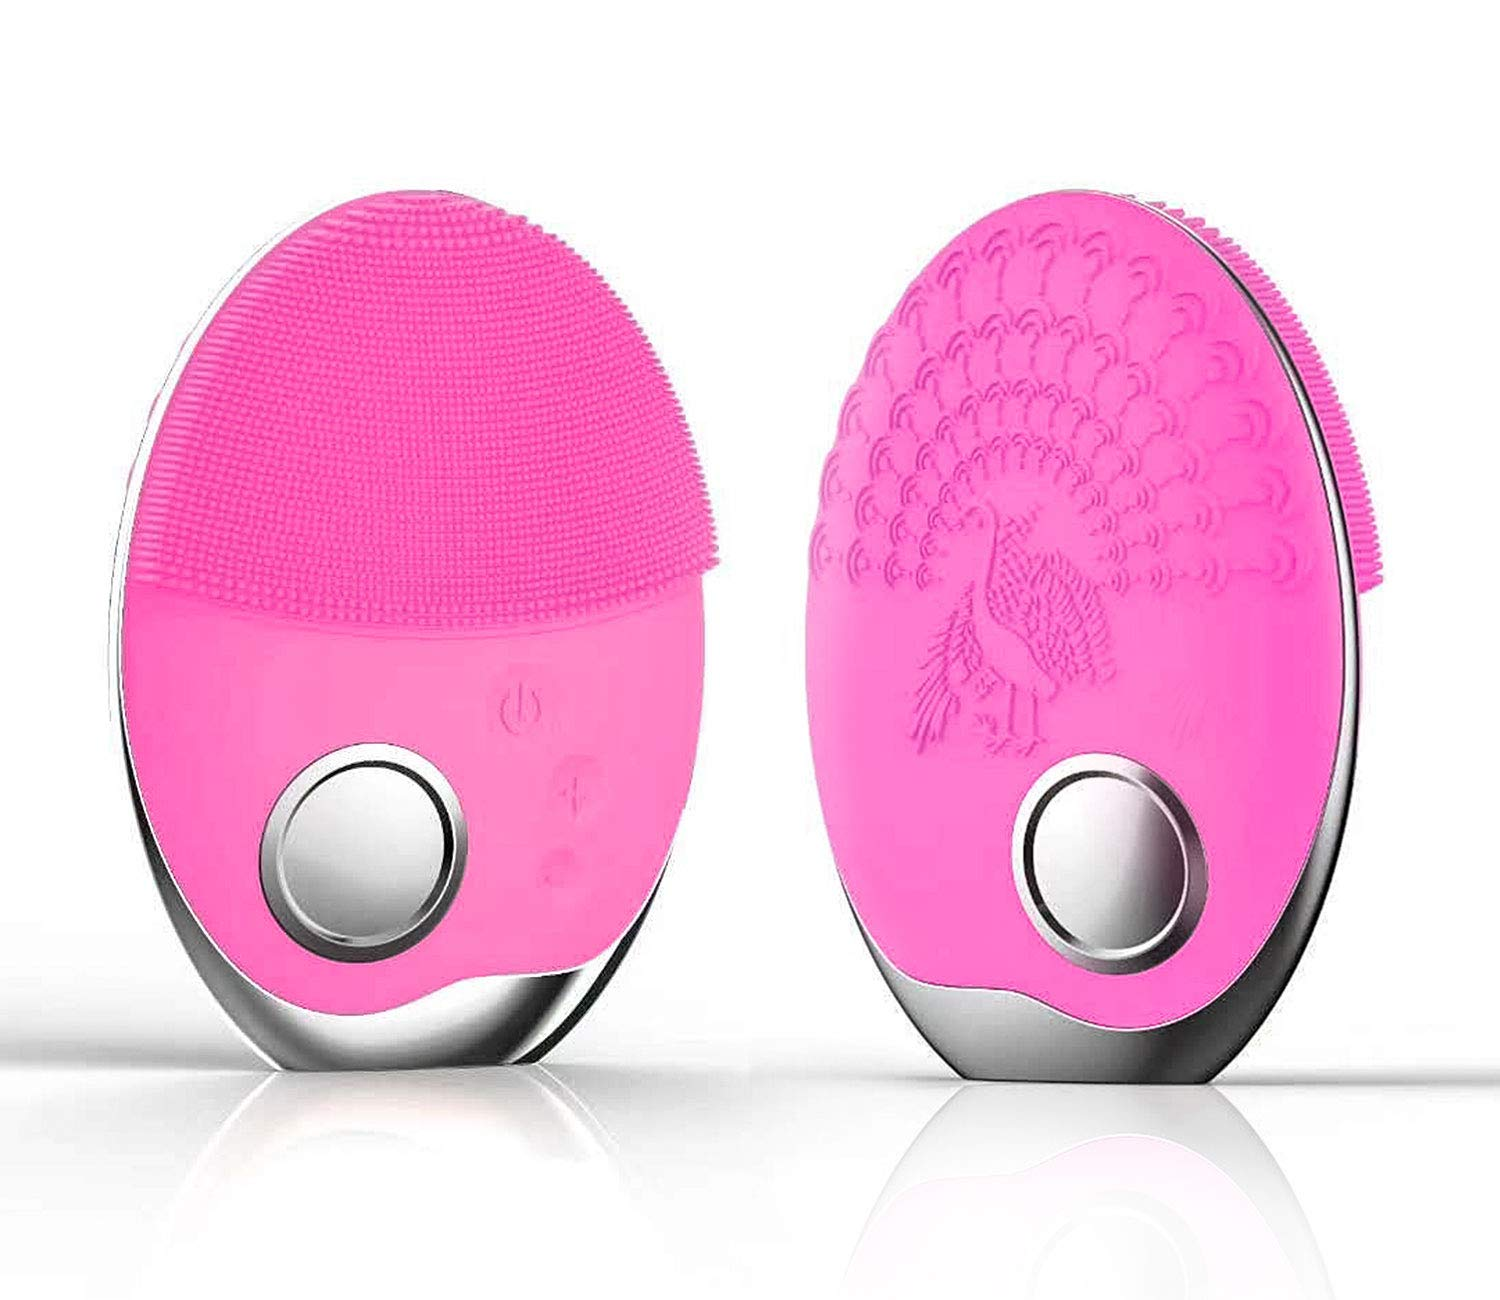 Facial Cleansing Brush, Sonic Waterproof Face Brush Silicone Phototherapy Skin Cleansing Brush with Wireless Charging for Deep Cleansing, Exfoliating, Removing Blackhead Face Massager Pink